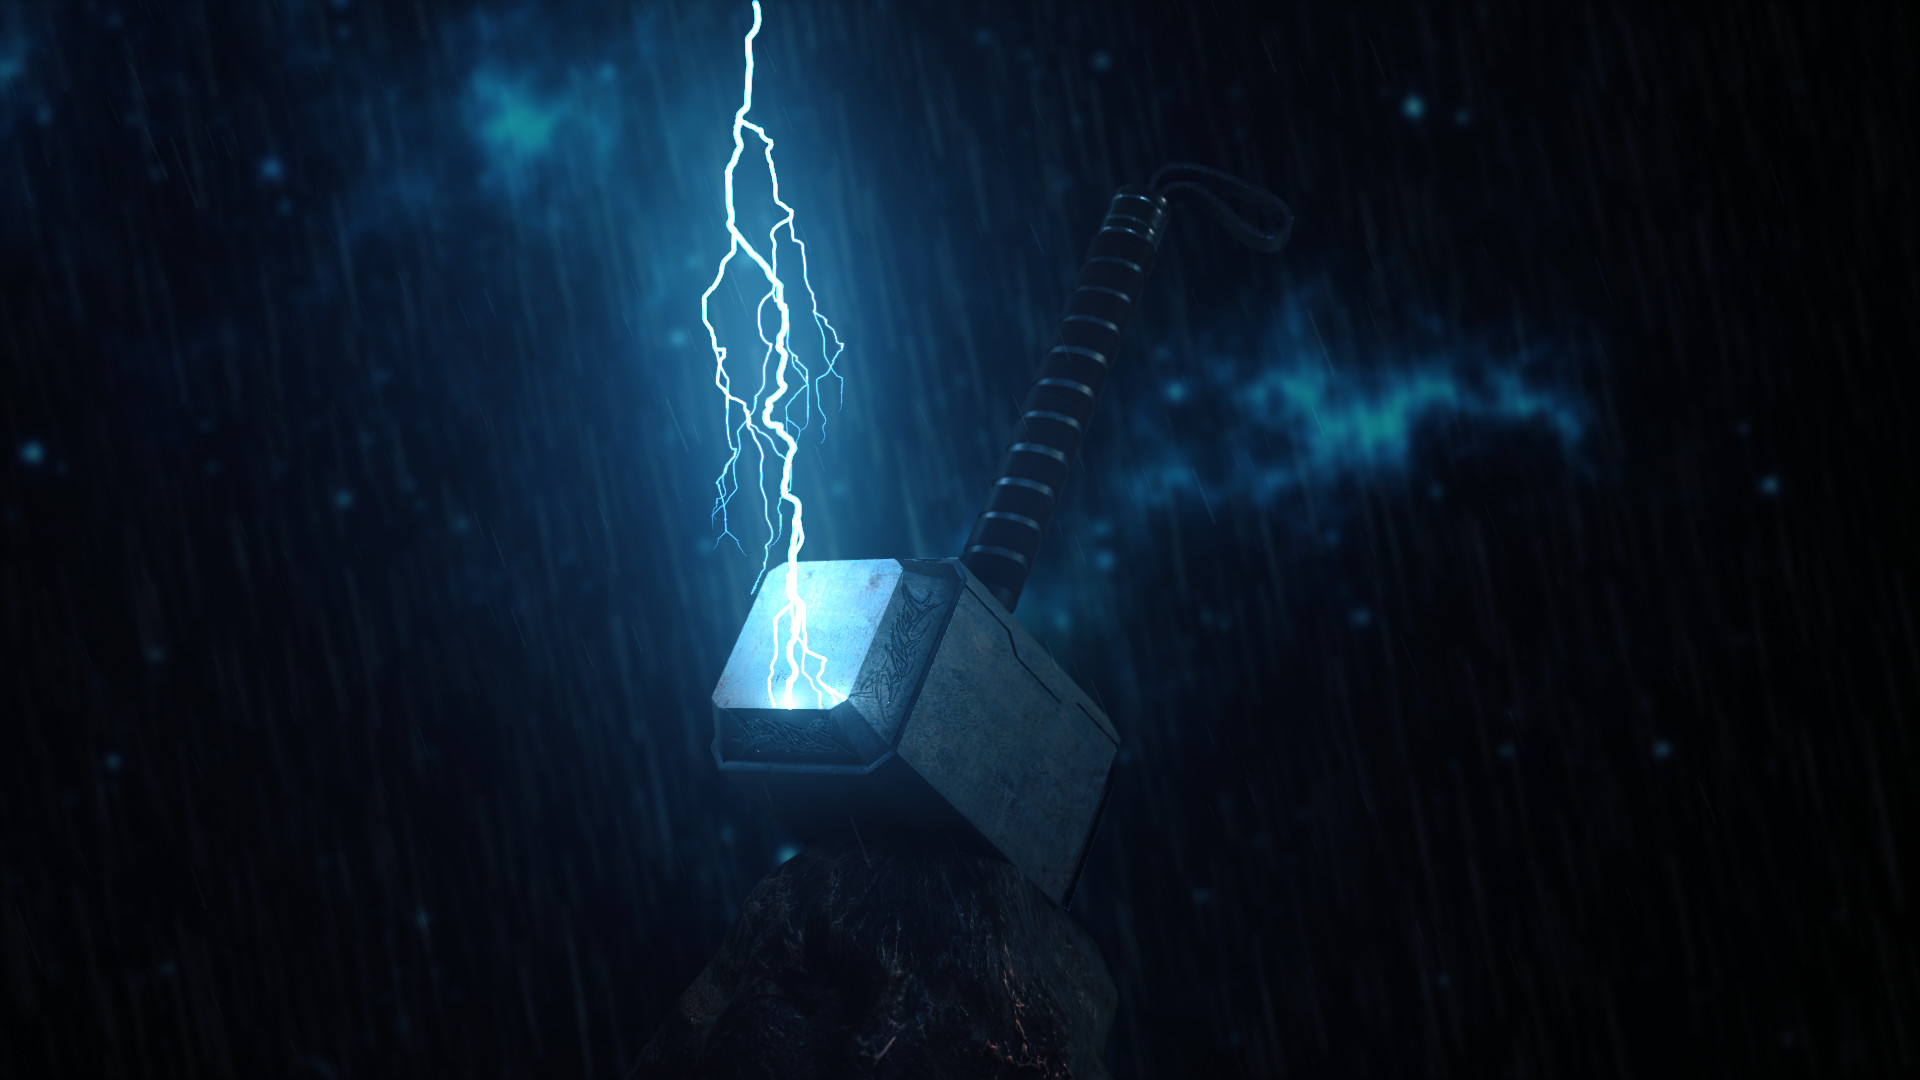 Thor hammer hd images - Thor hammer hd pics ...